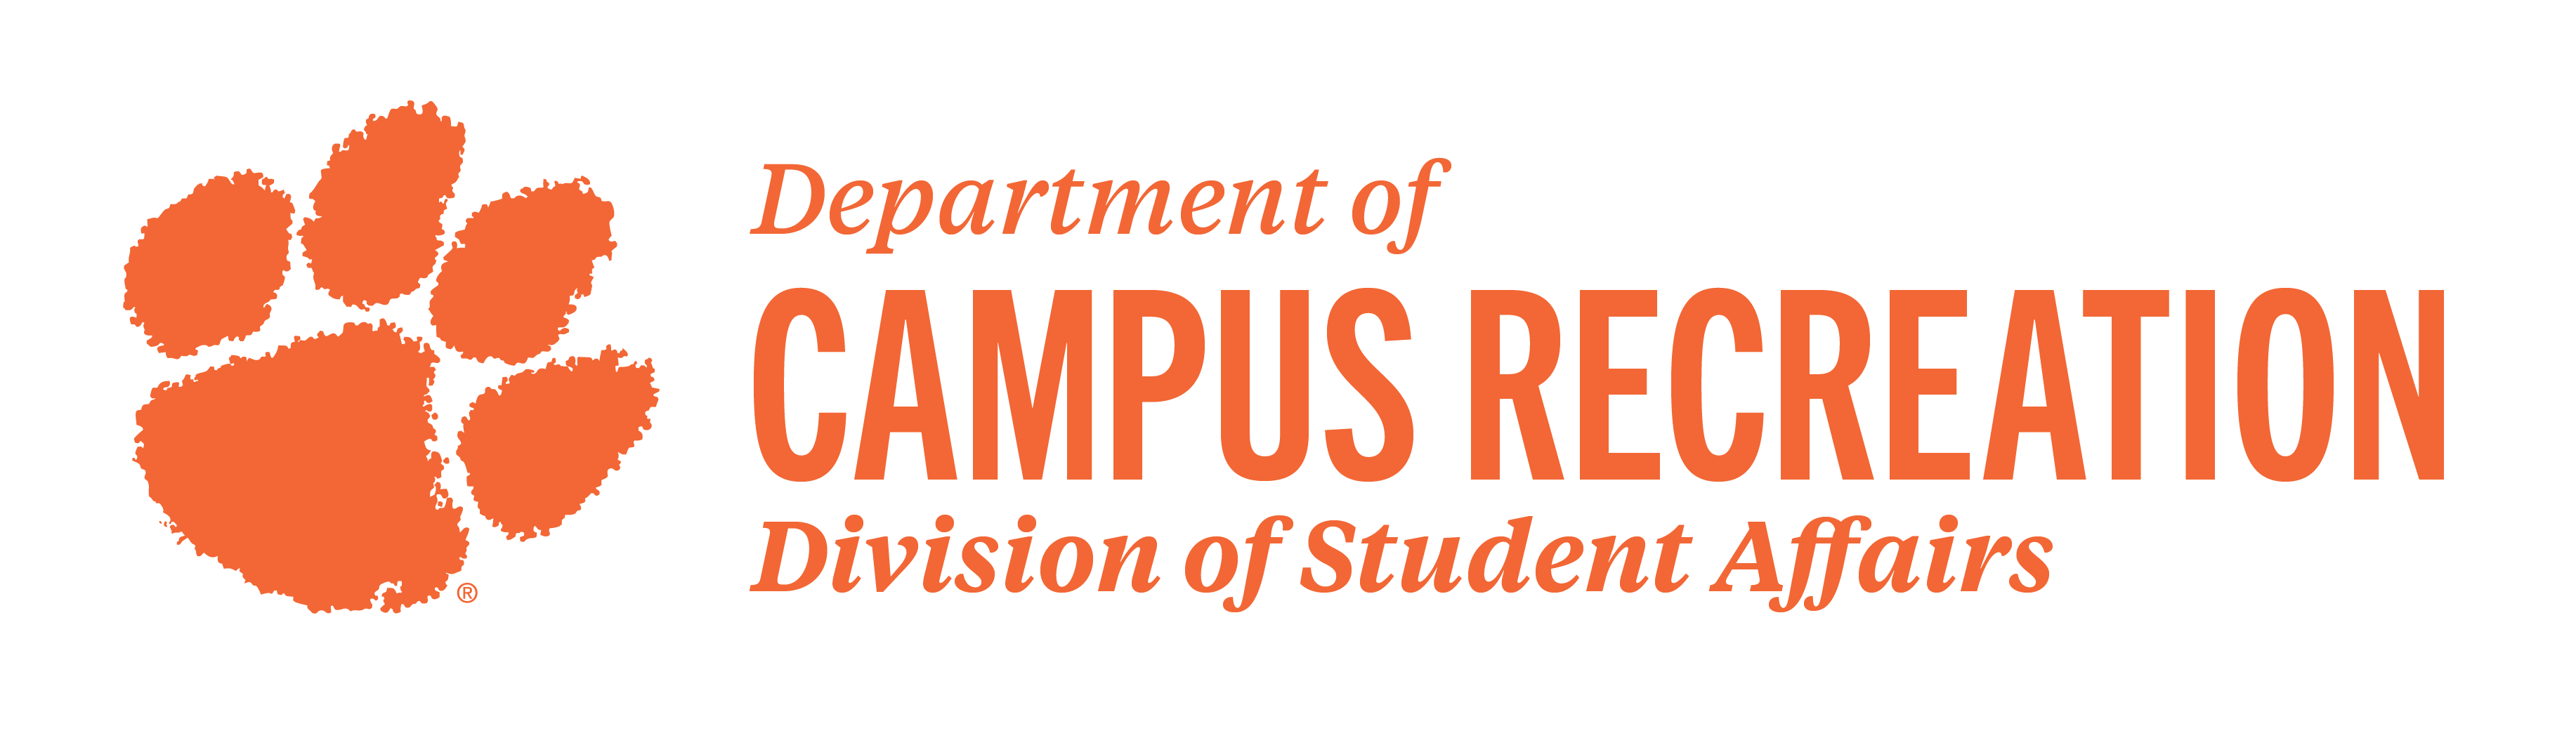 Experience Student Affairs